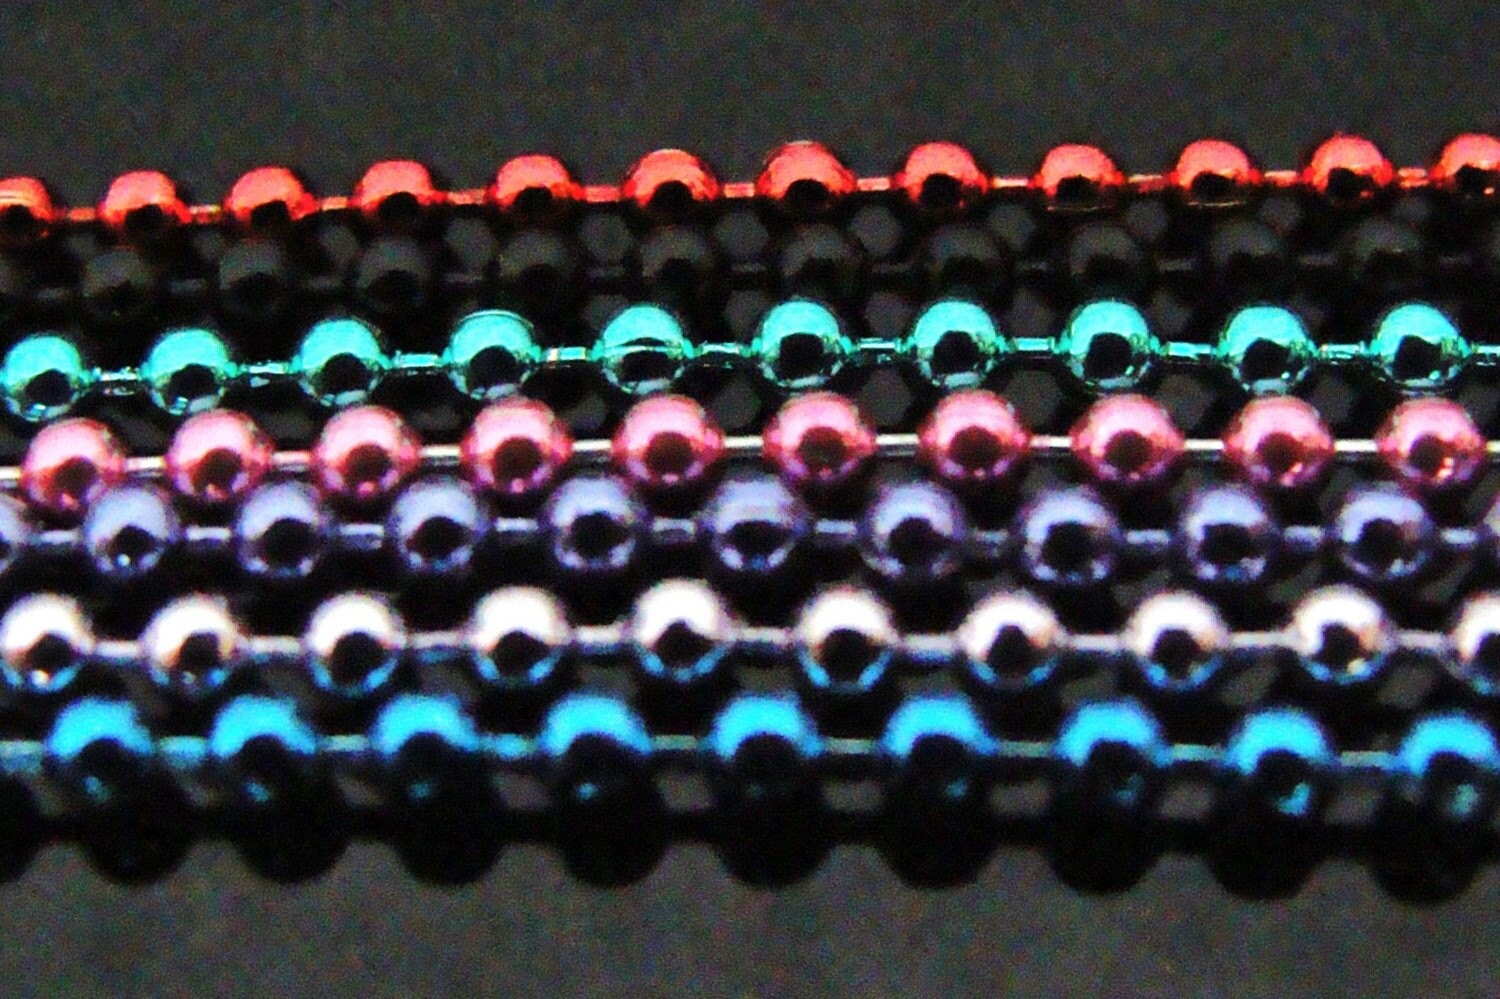 COLORFUL BALL CHAIN ----- 1.5MM BALL ------17 INCH --- PINK - BLUE - PURPLE - LILAC - BLACK  -RED  - GREEN